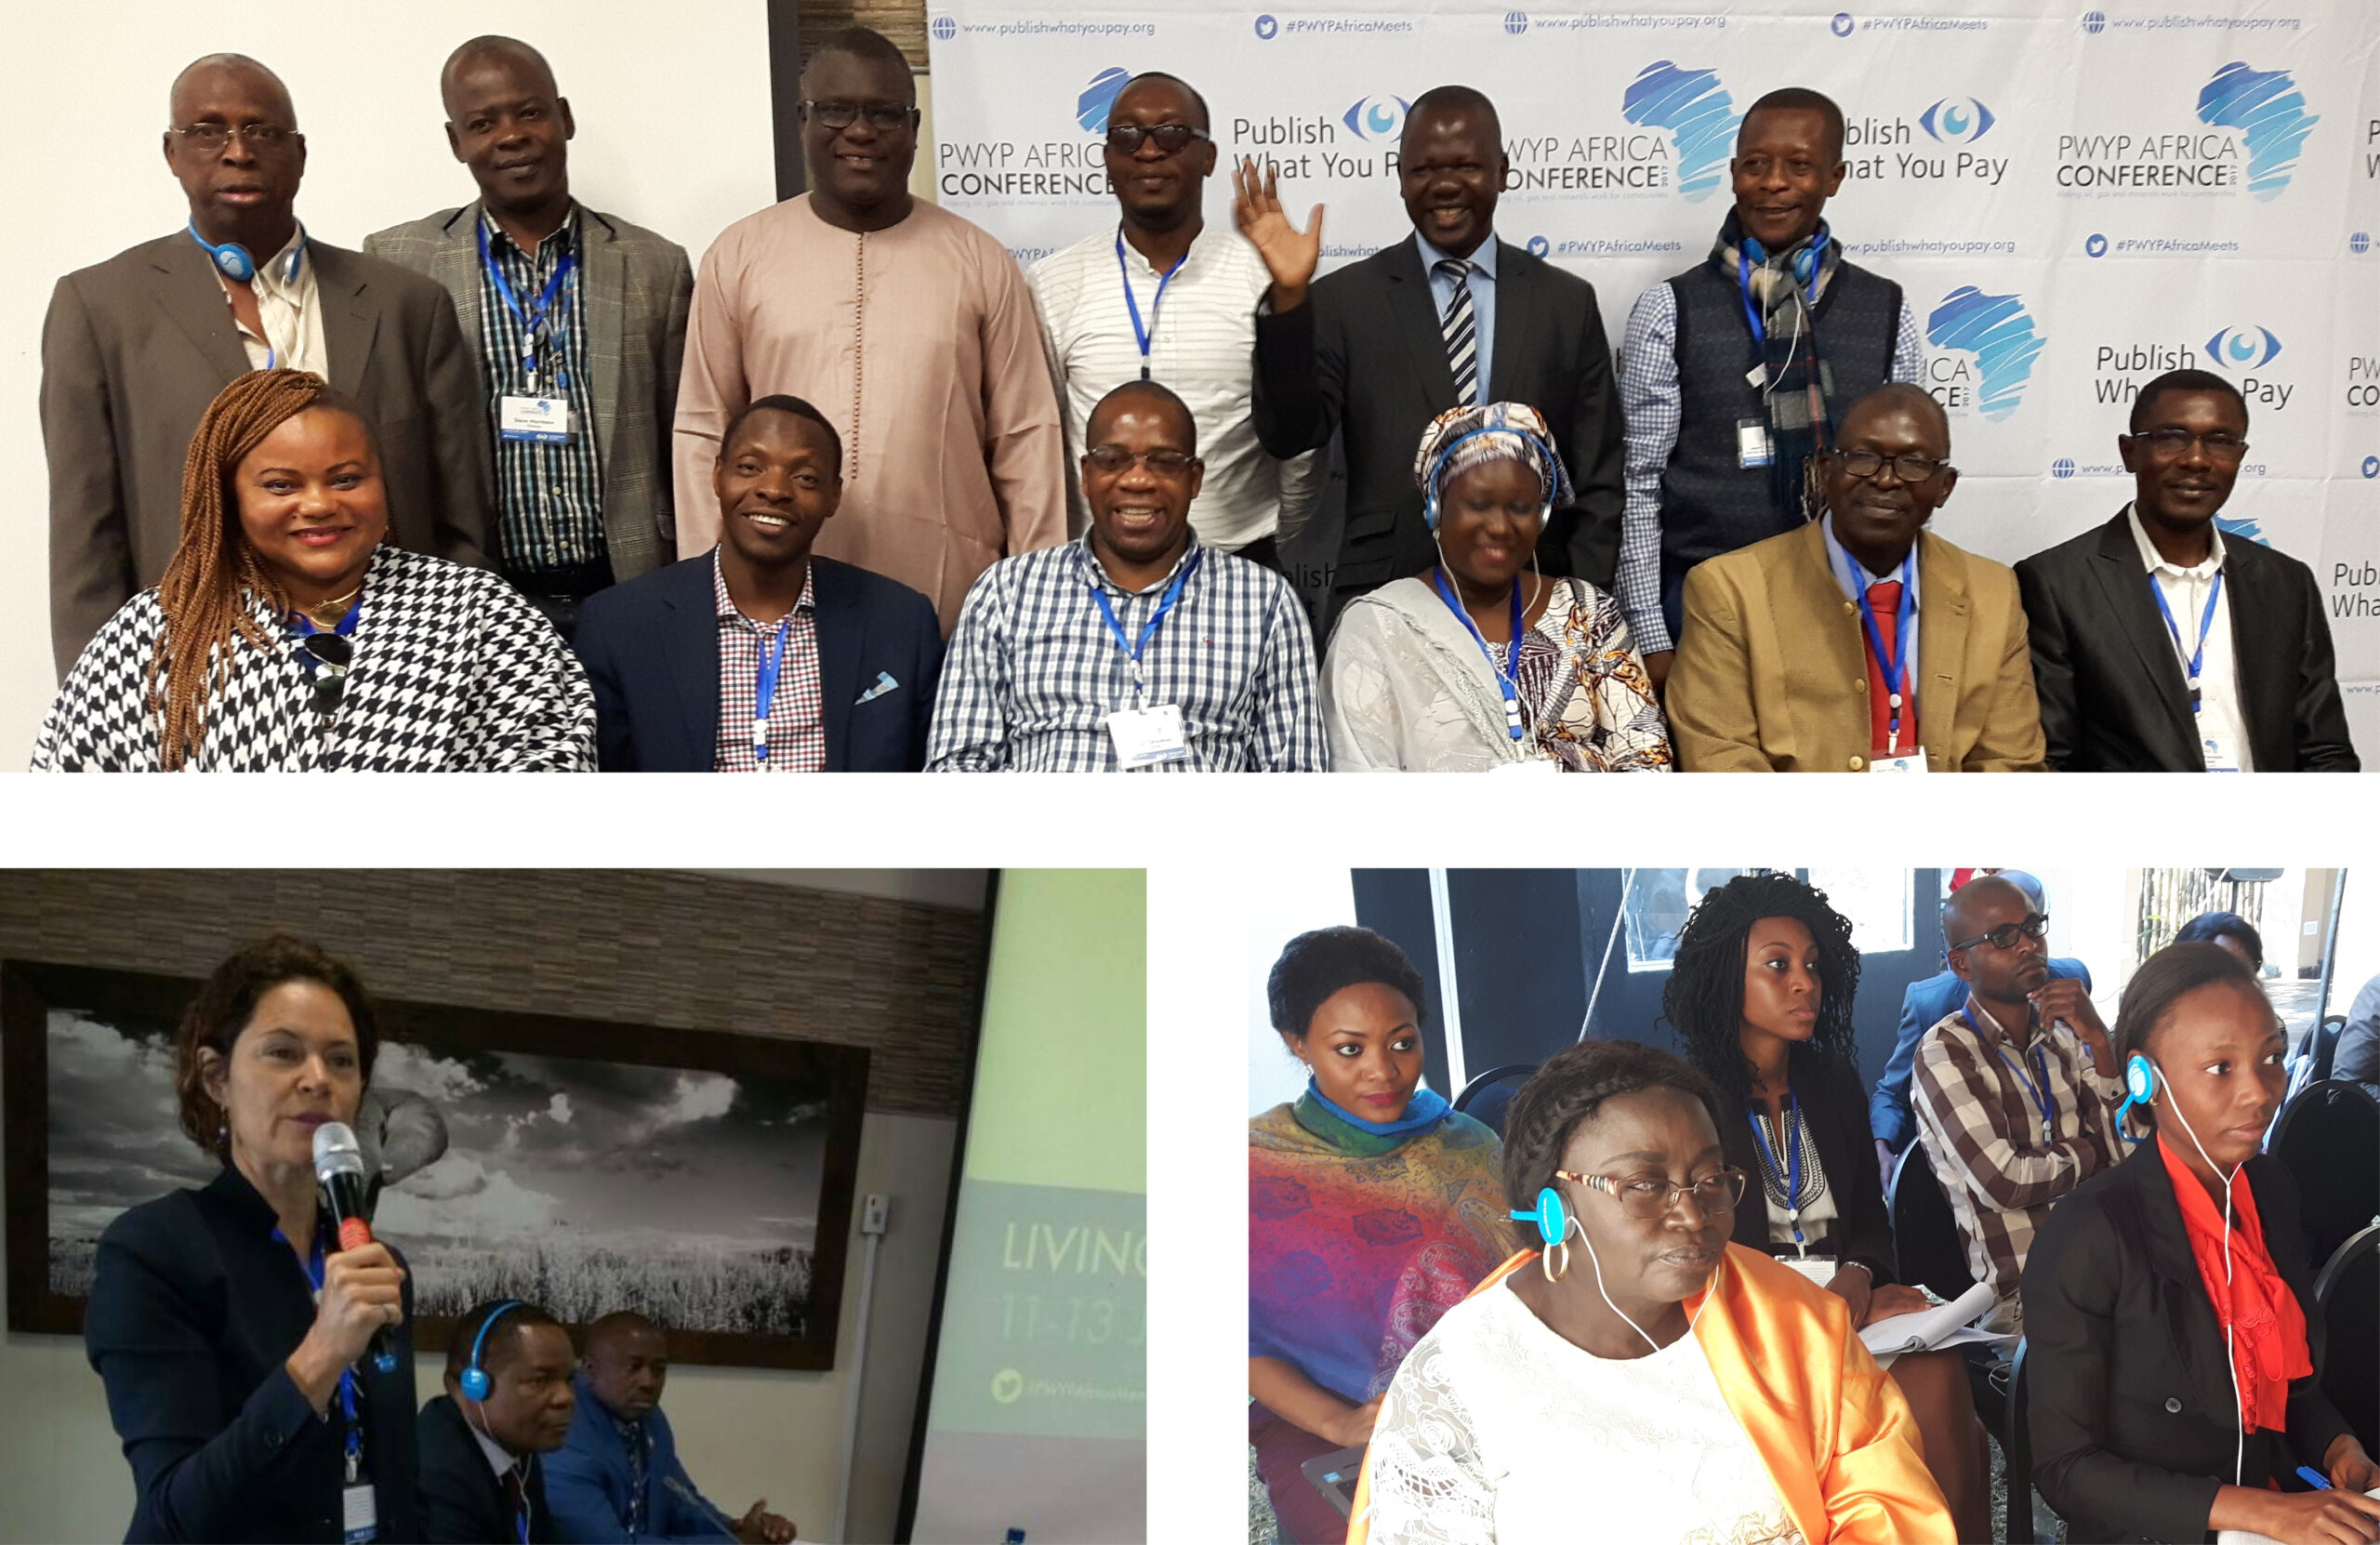 pictures of attendees at the PWYP Africa Conference